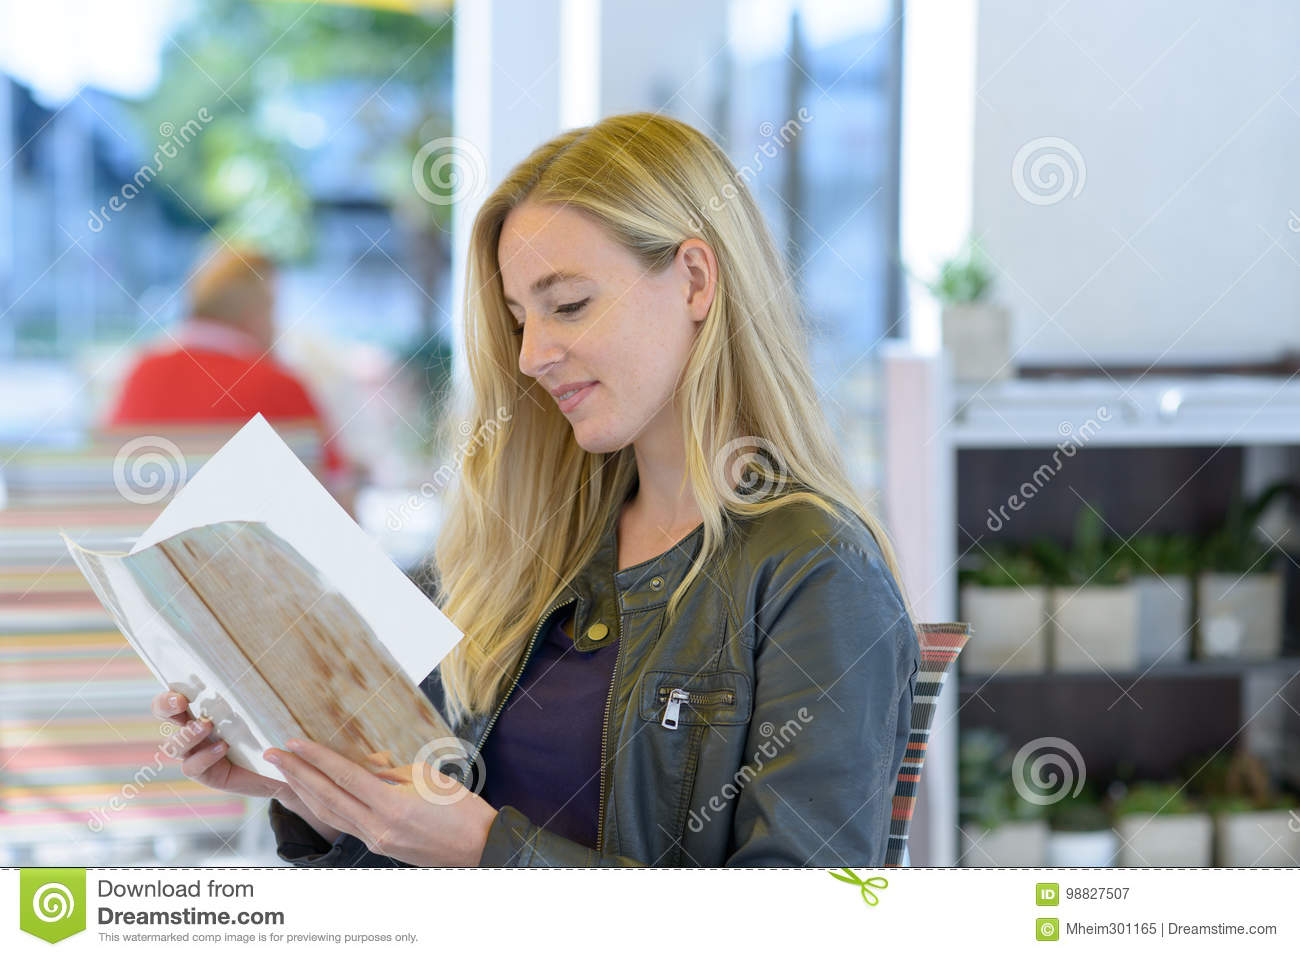 Young blond woman reading menu